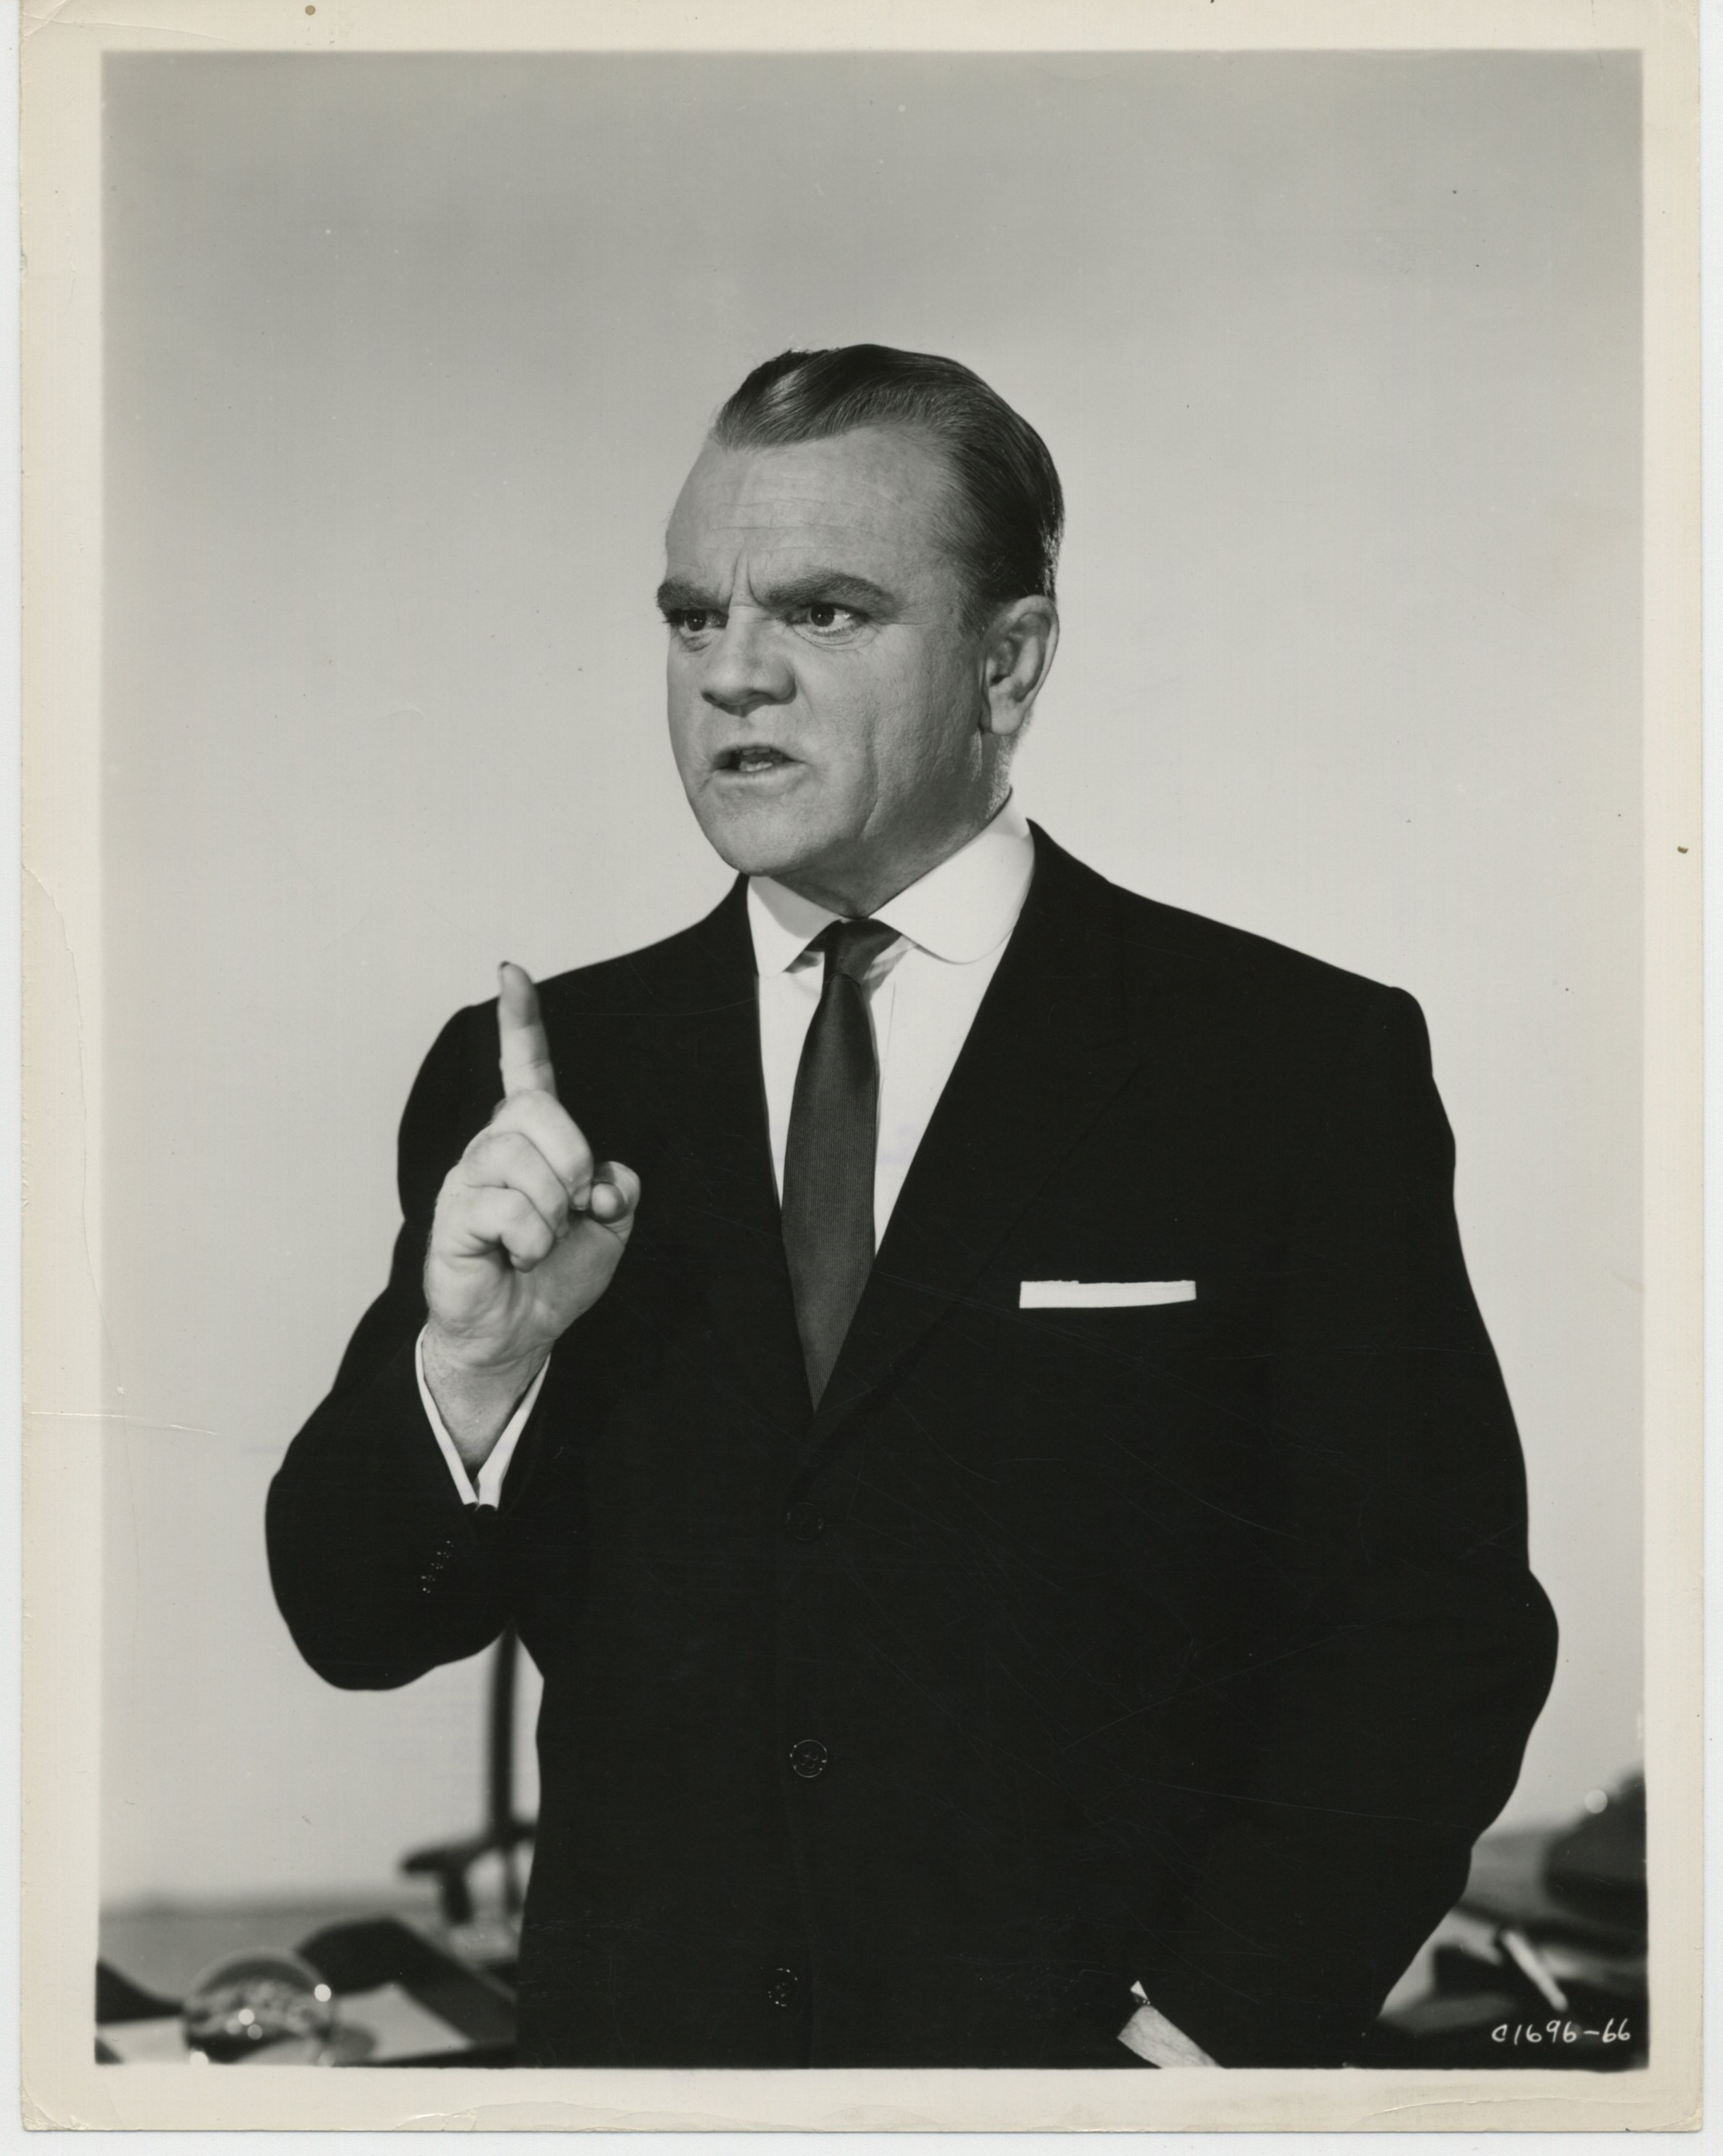 James Cagney in These Wilder Years (1956)